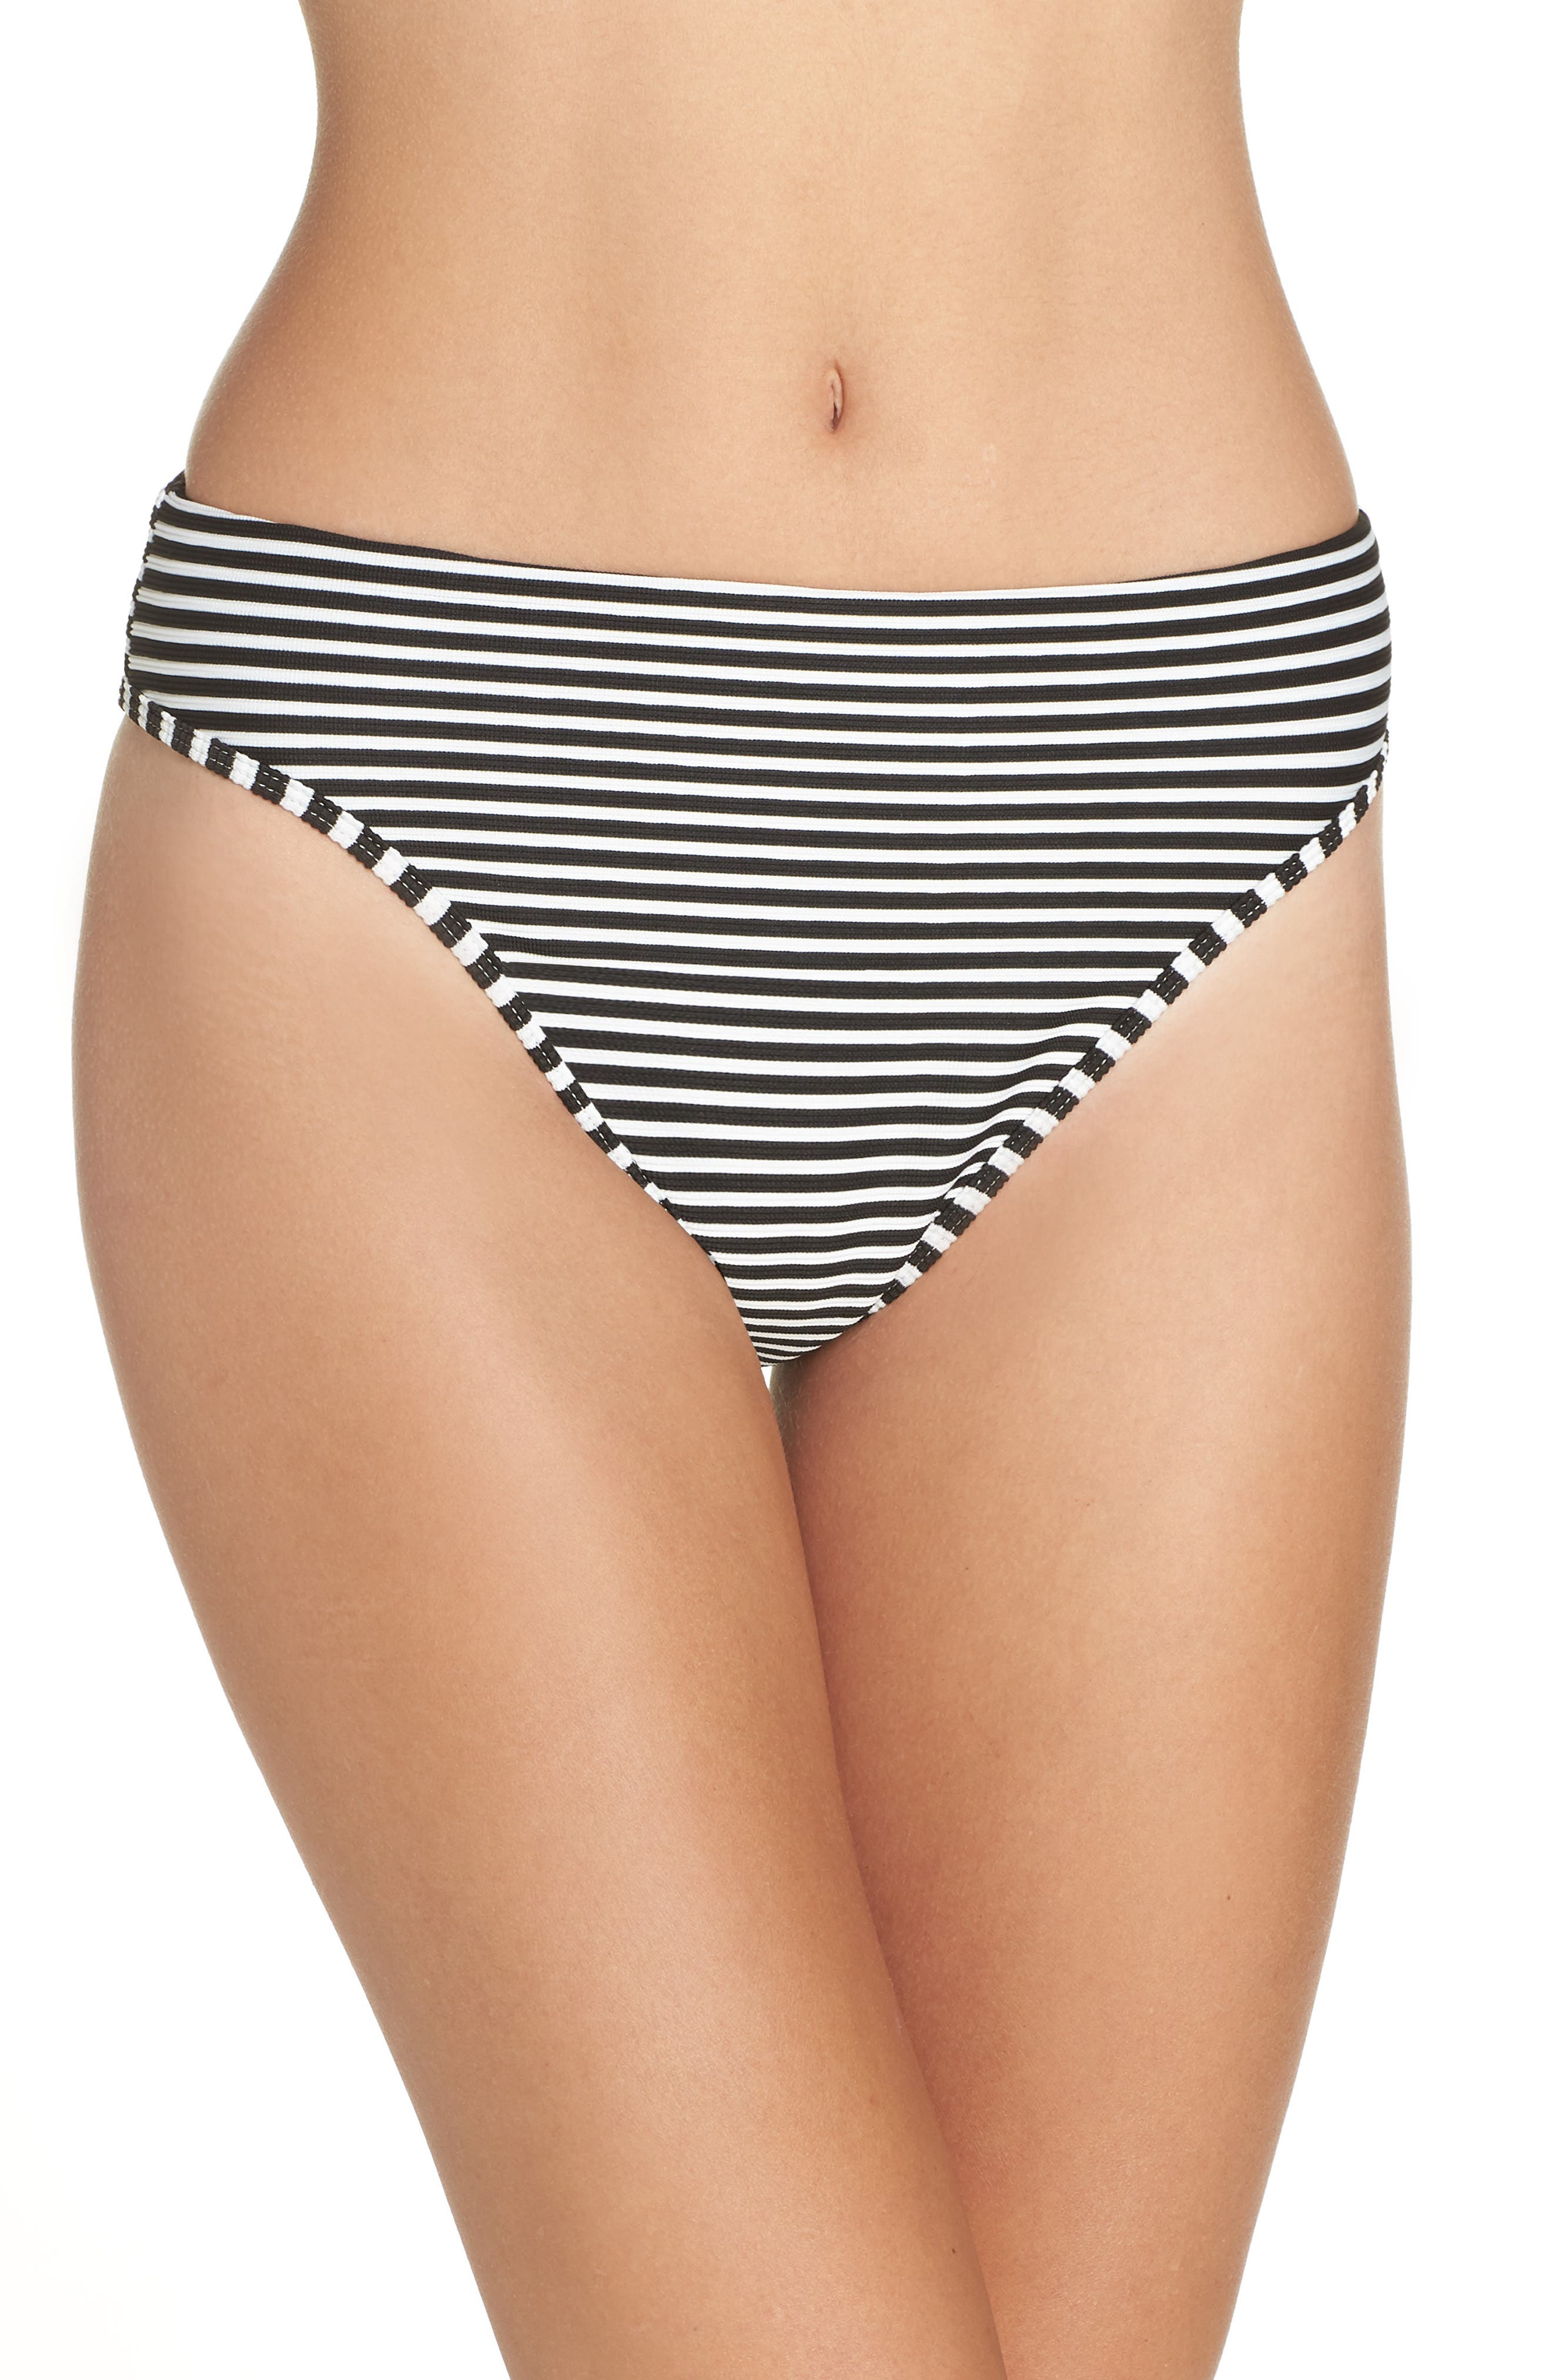 Pierre High Waist Bikini Bottoms,                         Main,                         color, BLACK/ CREAM